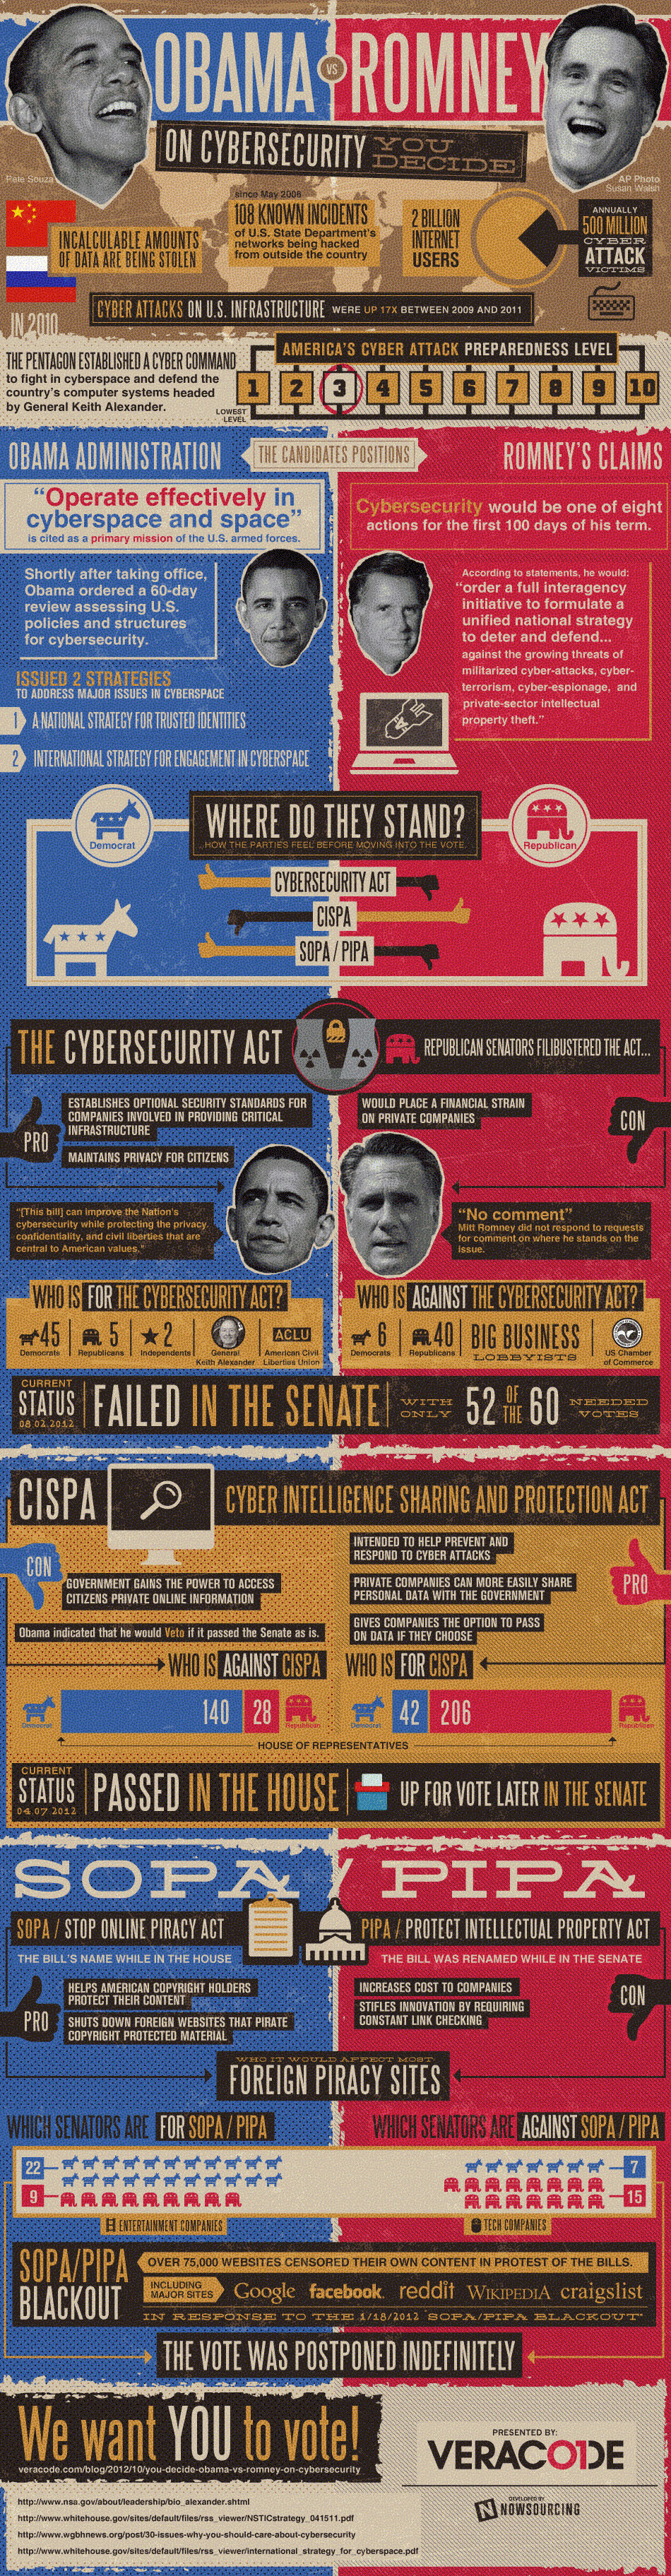 Obama vs Romney on Cybersecurity: You Decide